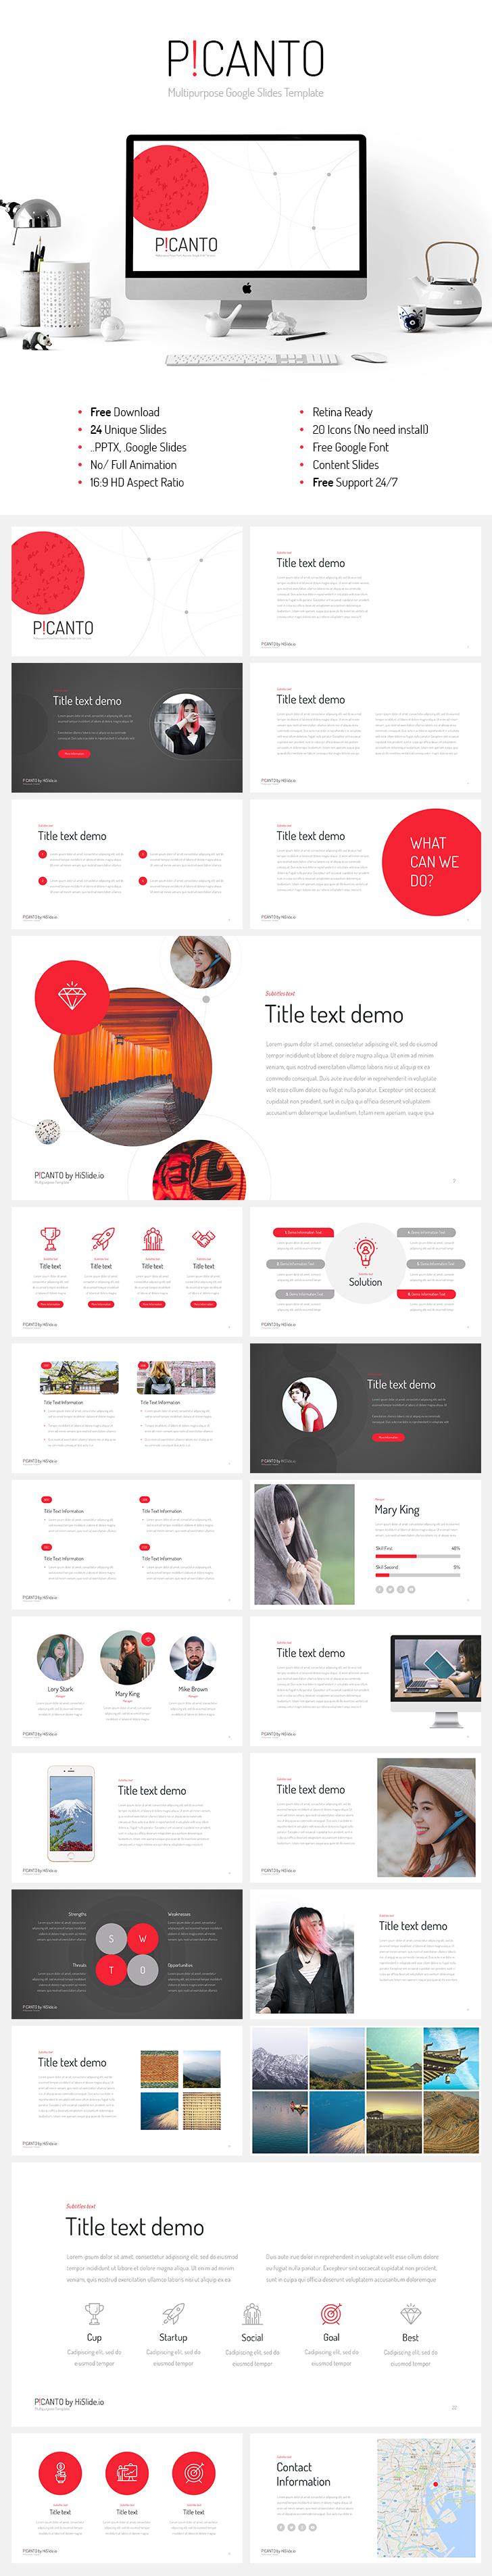 559e155c8 Picanto Google Slides template free download - Free Support 24 7!